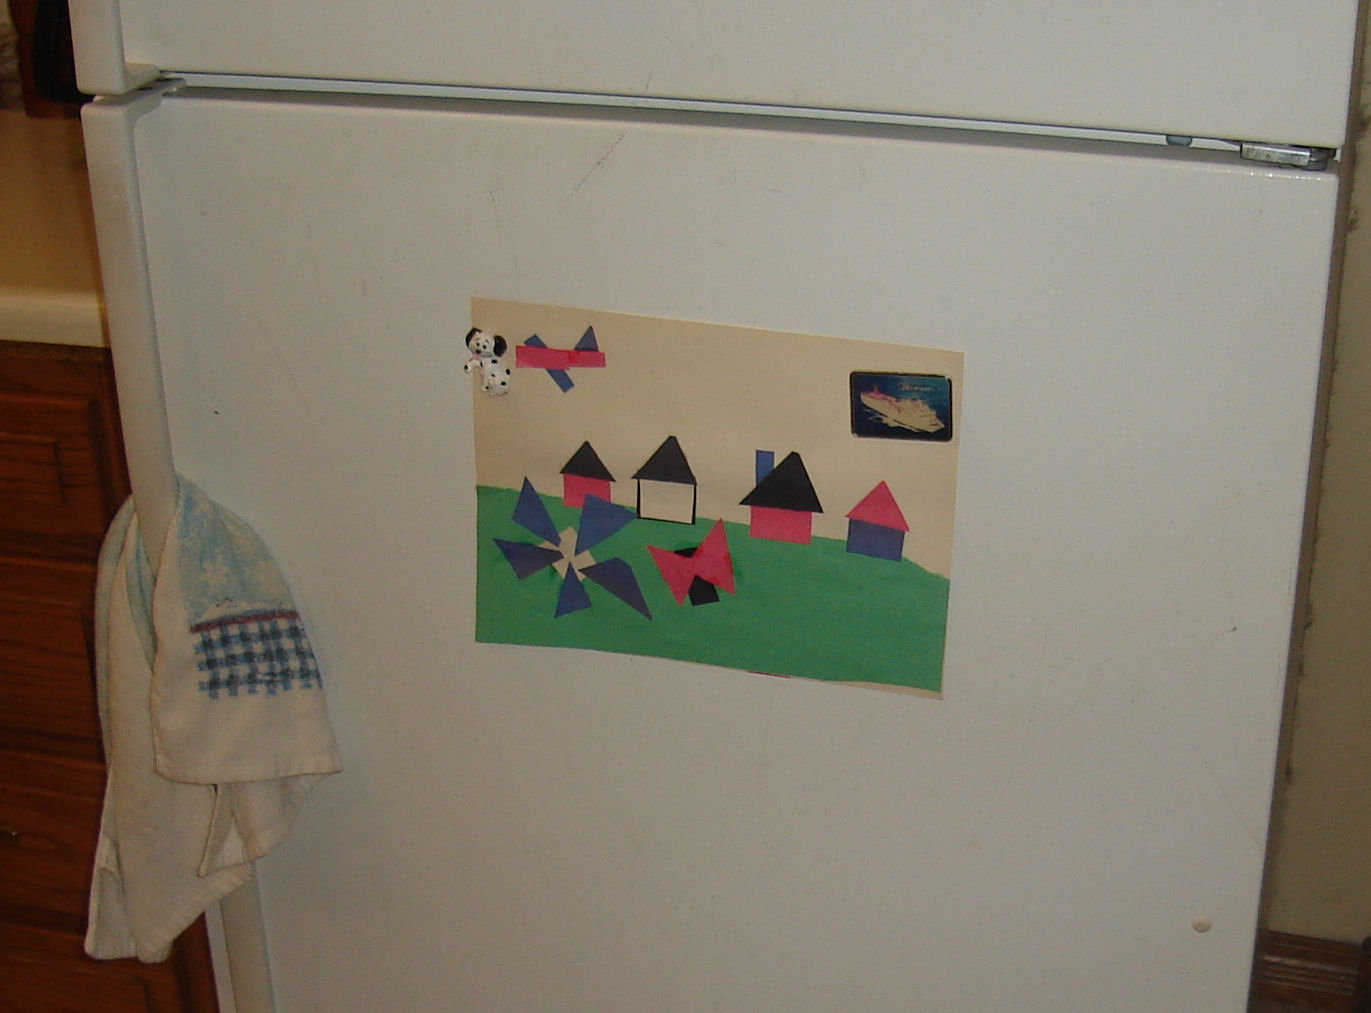 A pastoral landscape in construction paper